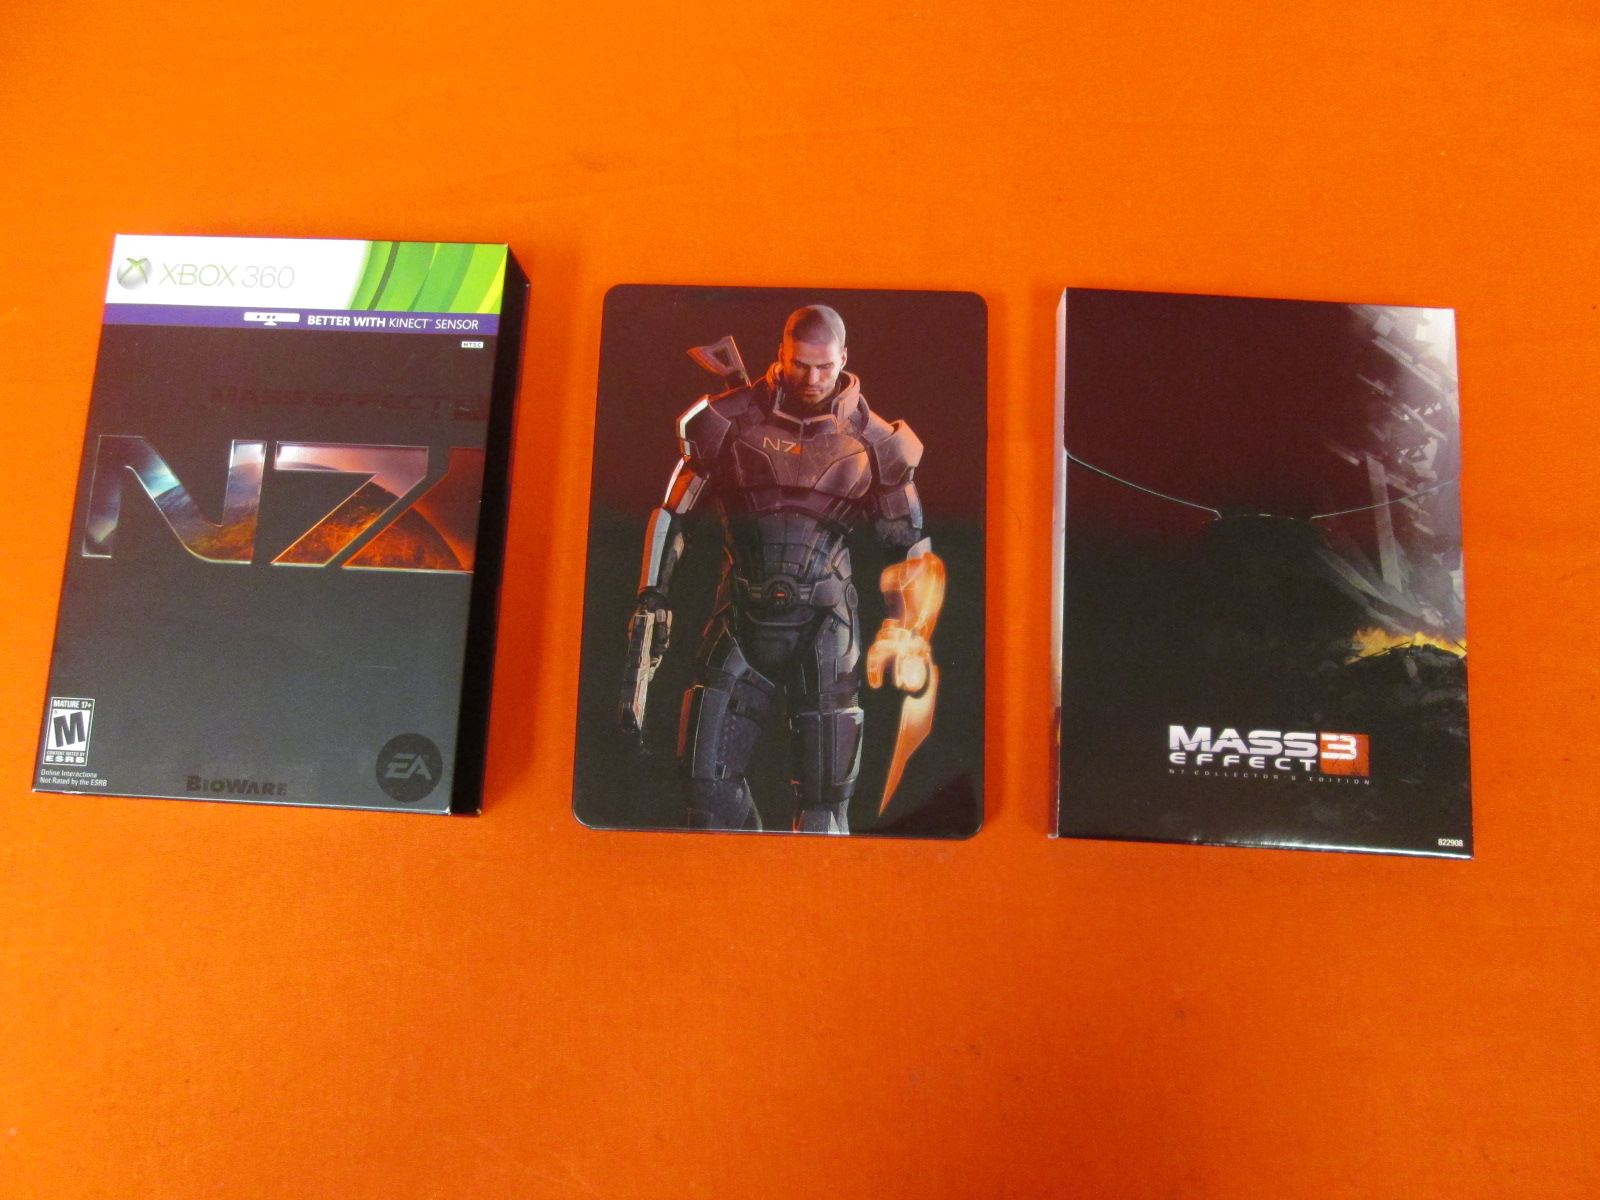 Box Accessories For Mass Effect 3 Edition For Xbox 360 Incomplete